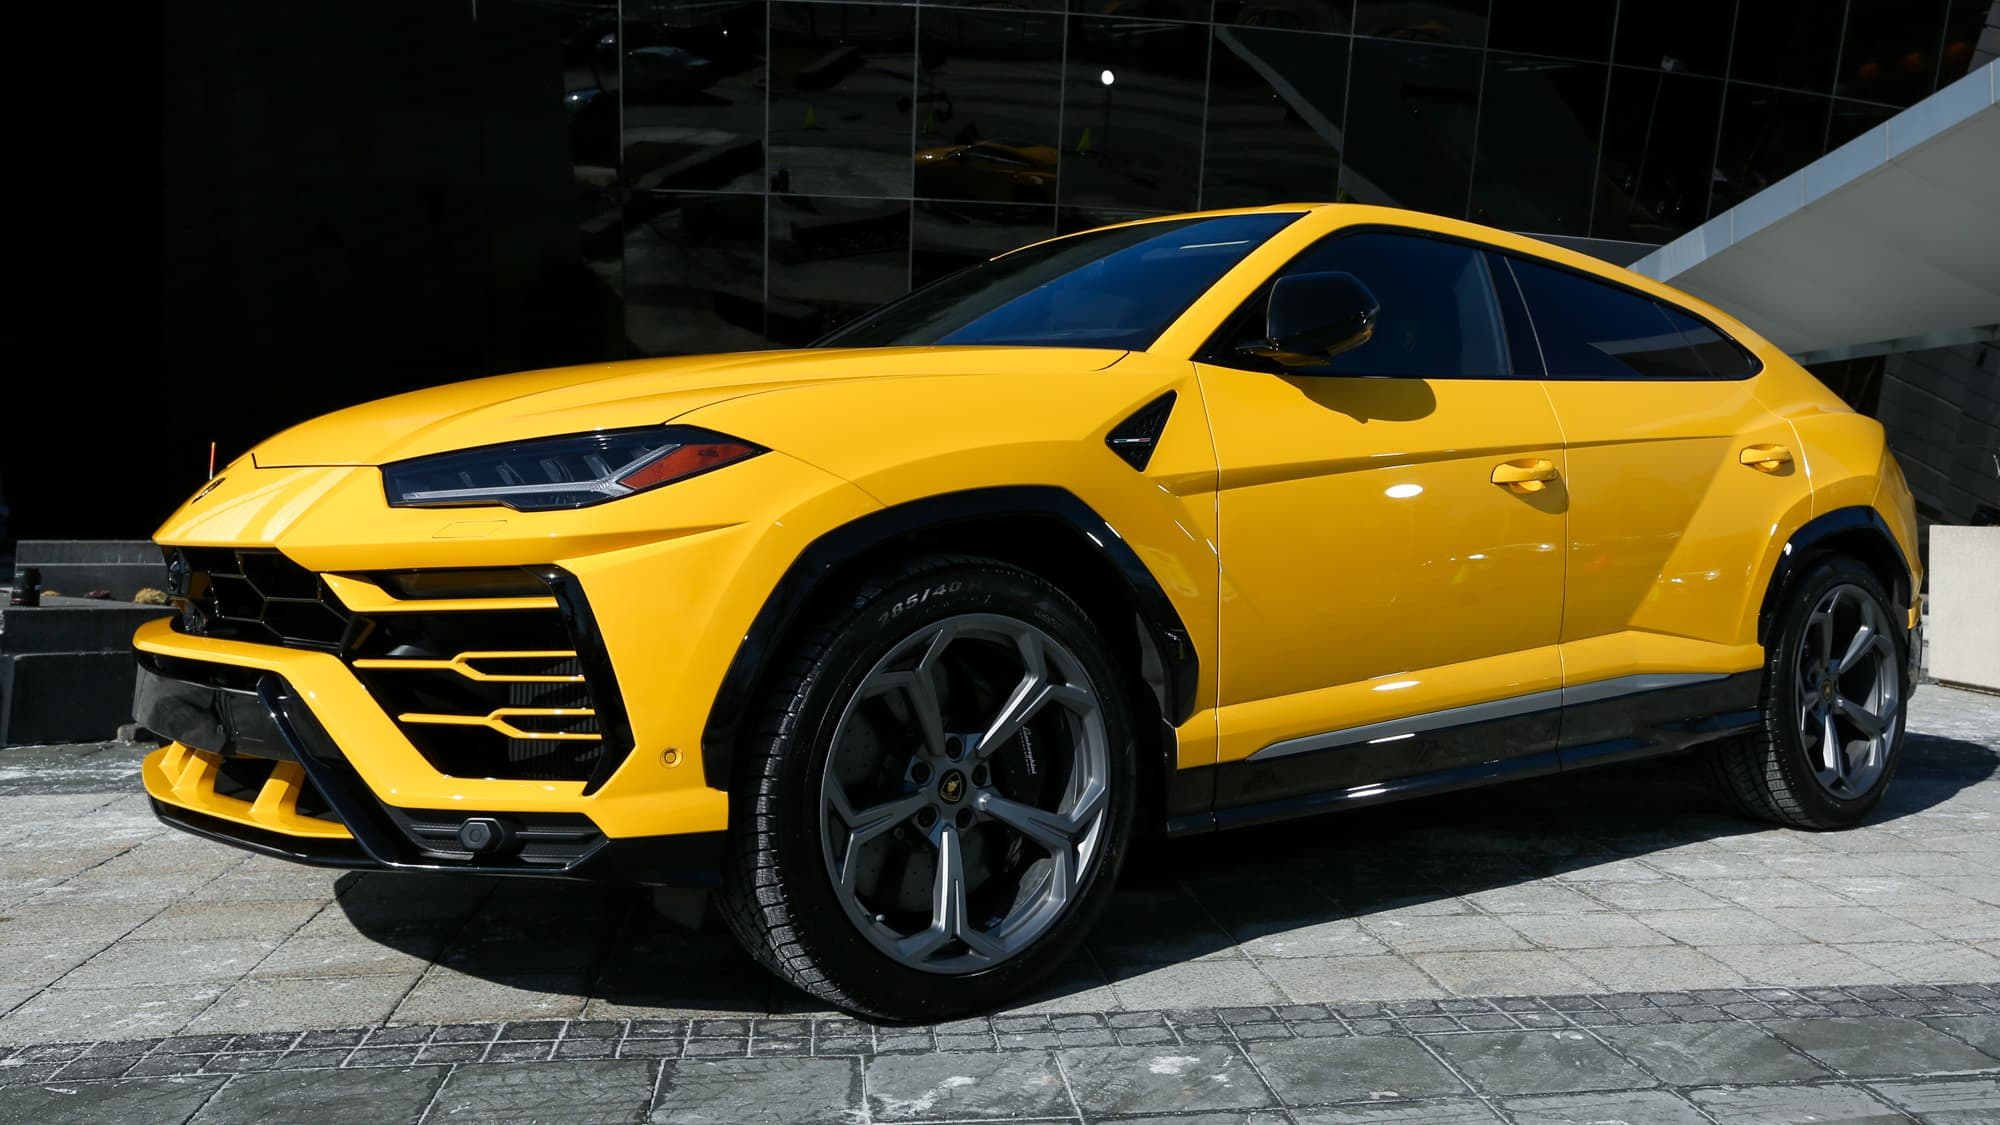 Lamborghini S New 200 000 Suv Boosts Automaker S Sales By 51 In 2018